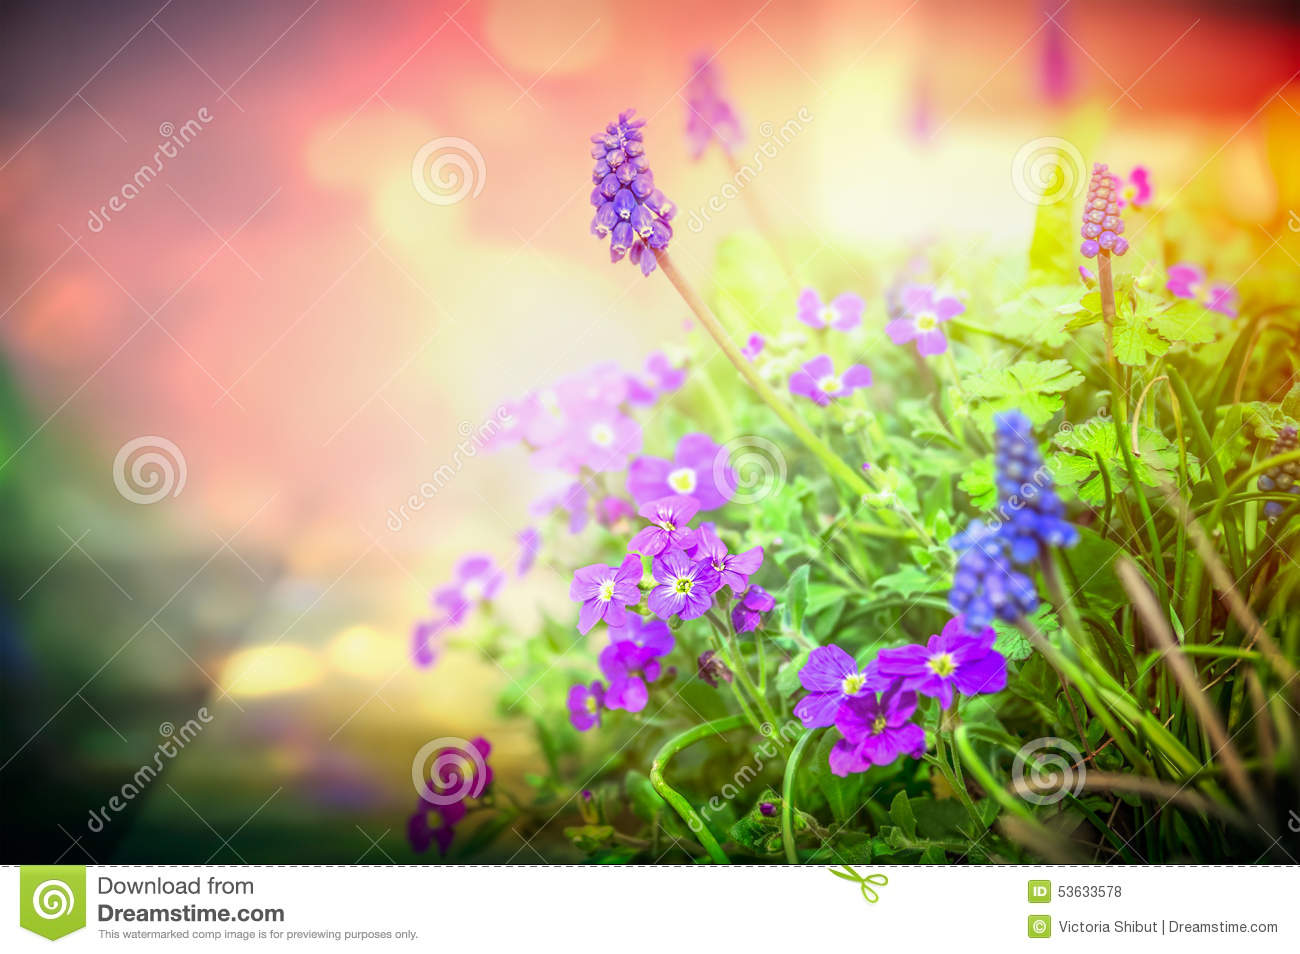 back background blurred close flowers garden